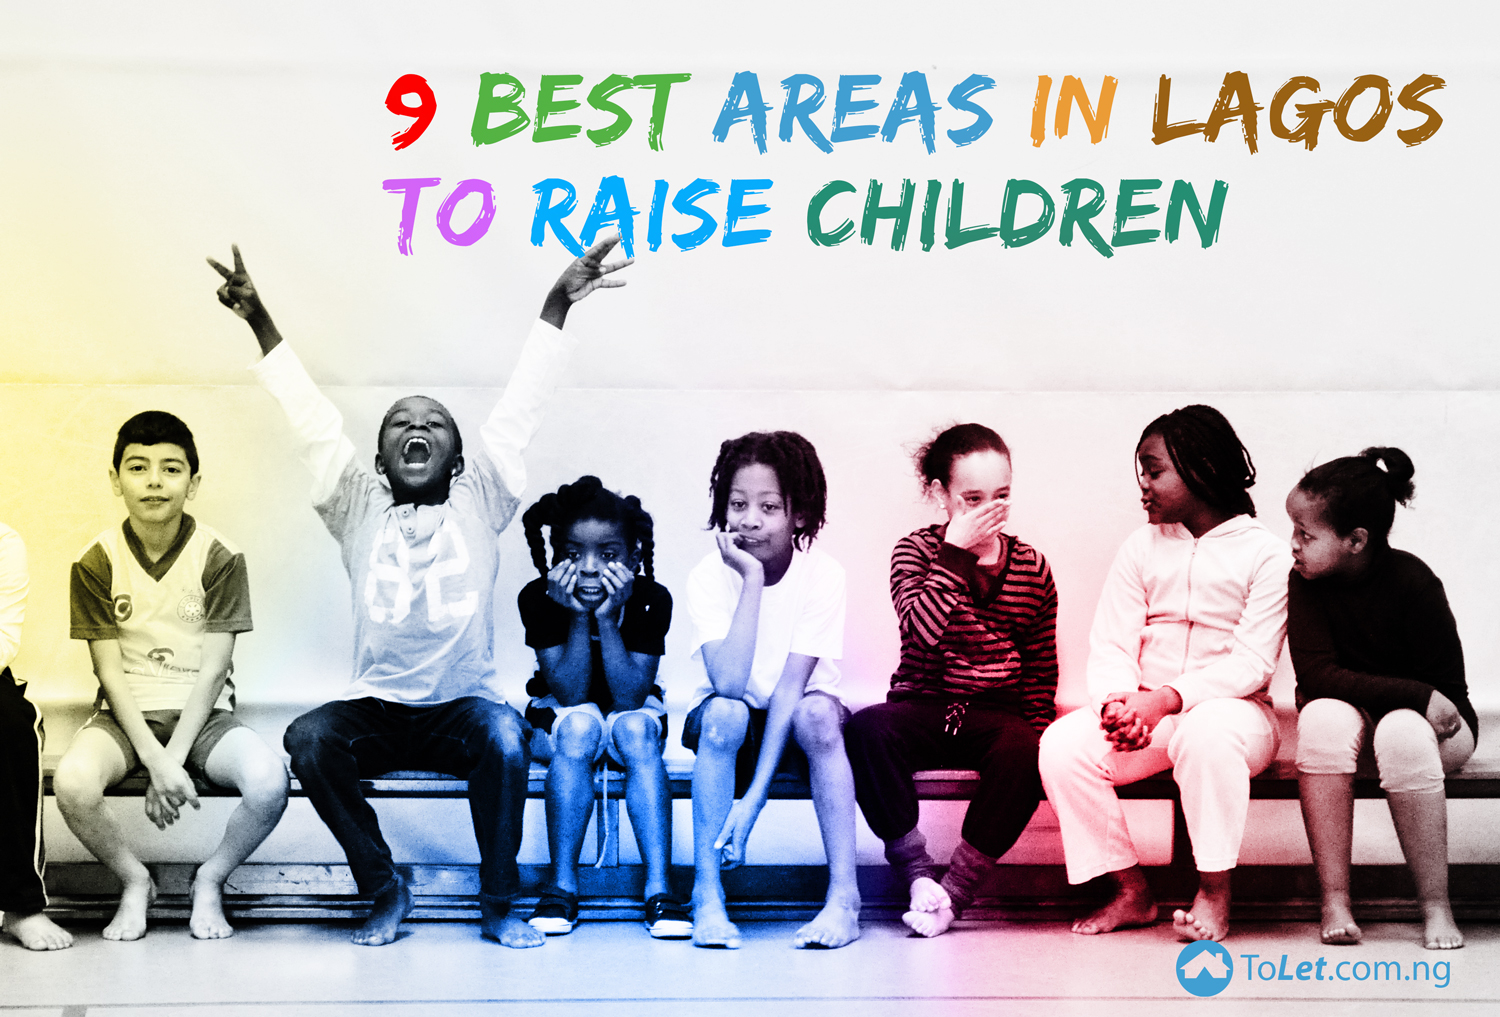 9 Best Areas In Lagos To Raise Children